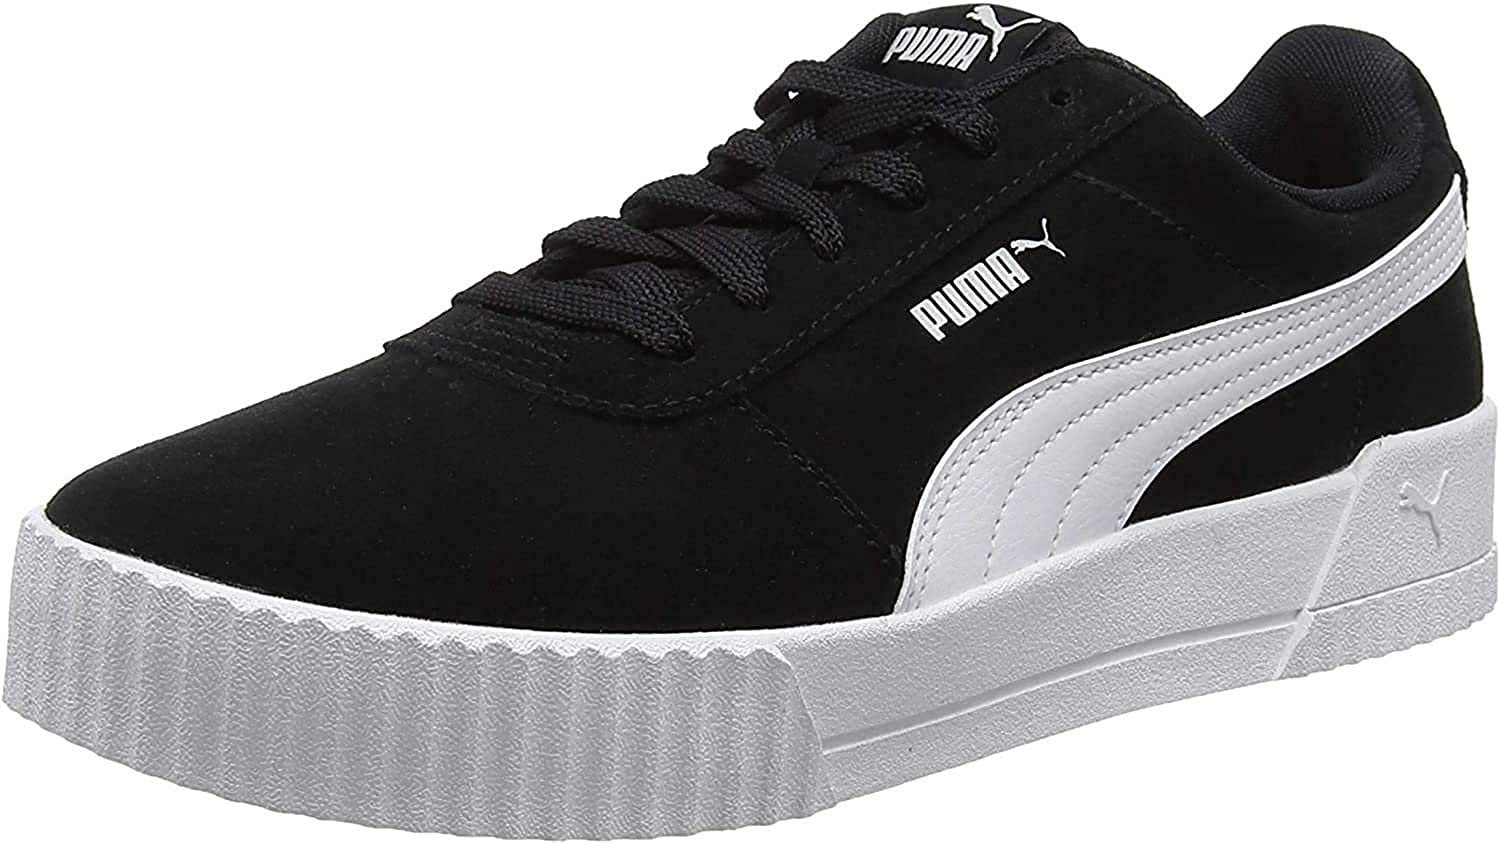 PUMA Our Spring new work one after another shop OFFers the best service Women's Sneaker Carina